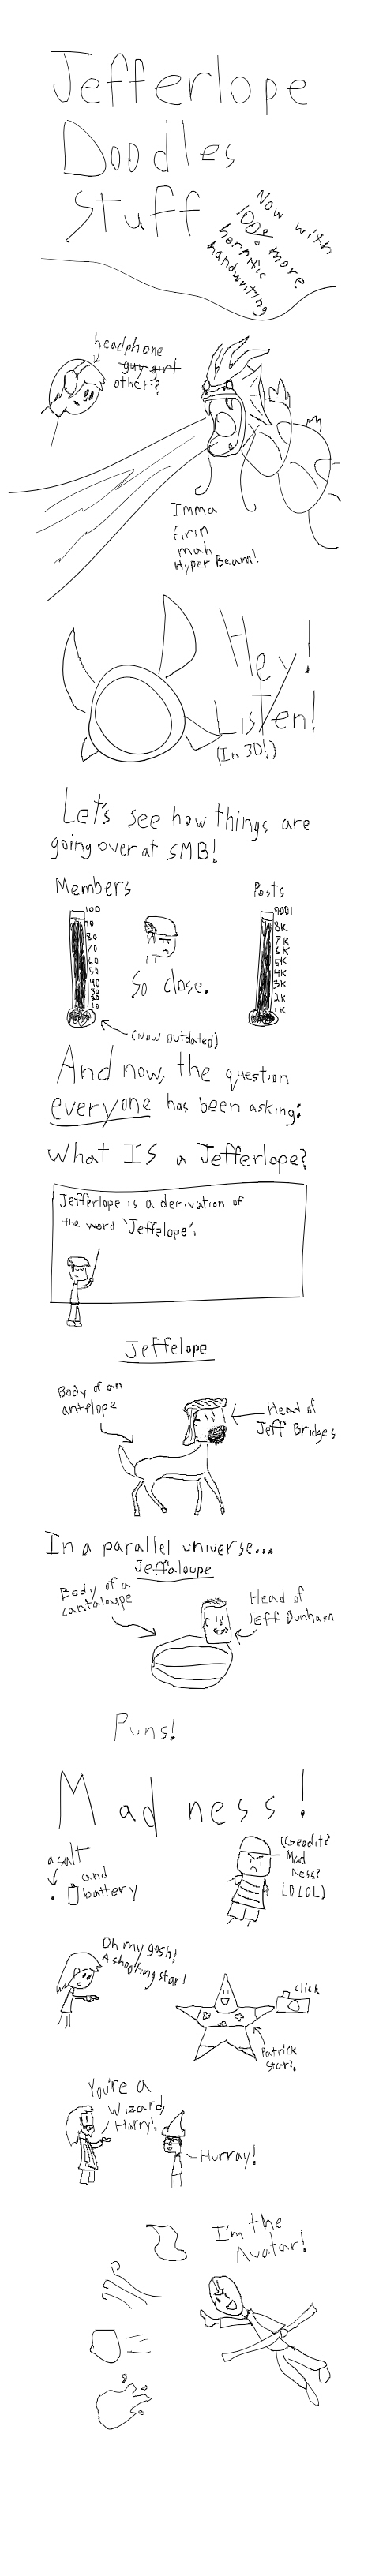 Jefferlope Doodles Stuff Jefferlop_doodles_stuff_by_jefferlope-d47uwwt